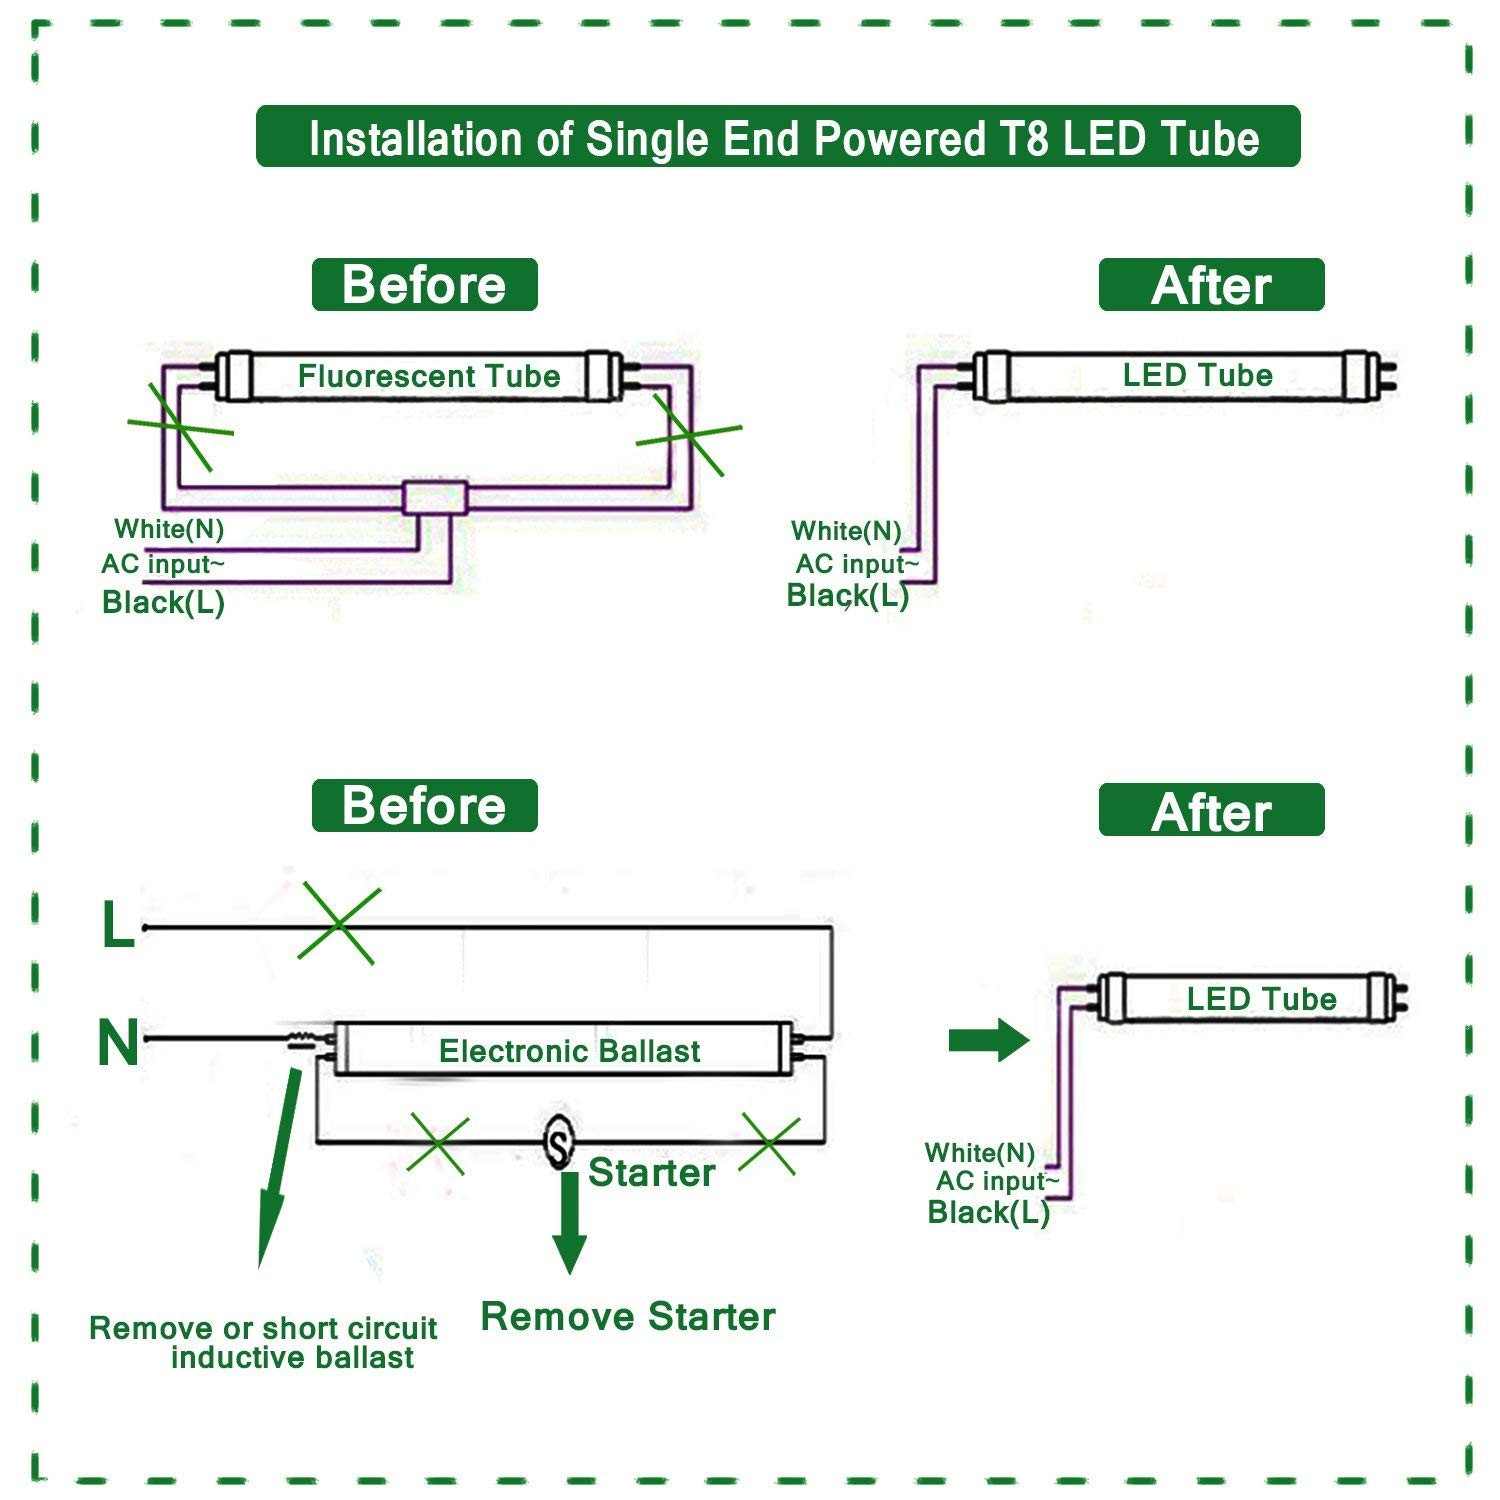 Led fluorescent tube replacement wiring diagram download wiring led fluorescent tube replacement wiring diagram collection fluro light wiring diagram australia save wiring diagram download wiring diagram swarovskicordoba Image collections